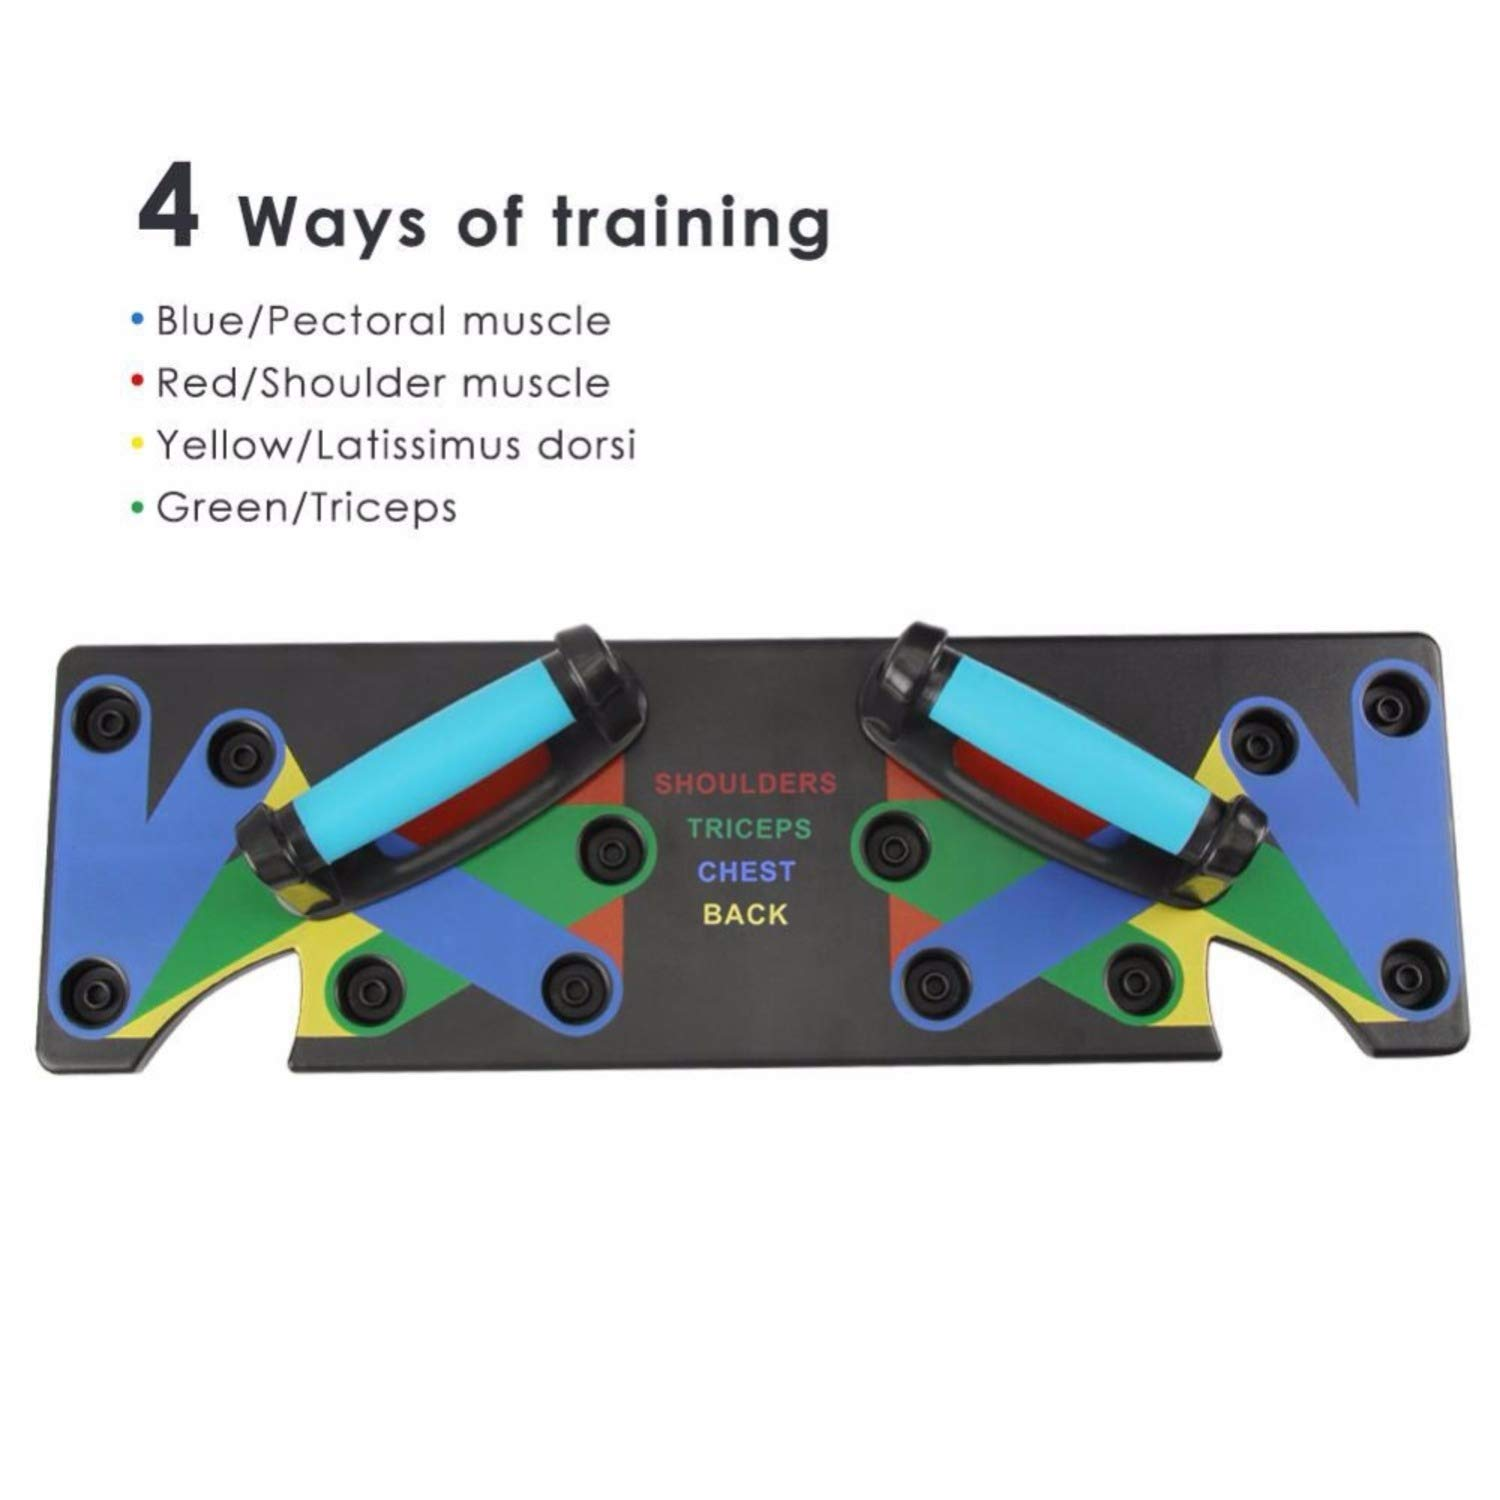 Ohyoulive The Ultra Push 9 In 1 System Multi-Function Push-Up Bracket Board Portable For Home Fitness Training Support Male Fitness Equipment Practice Chest Muscle Arm Muscle Latitudinal Muscle Type